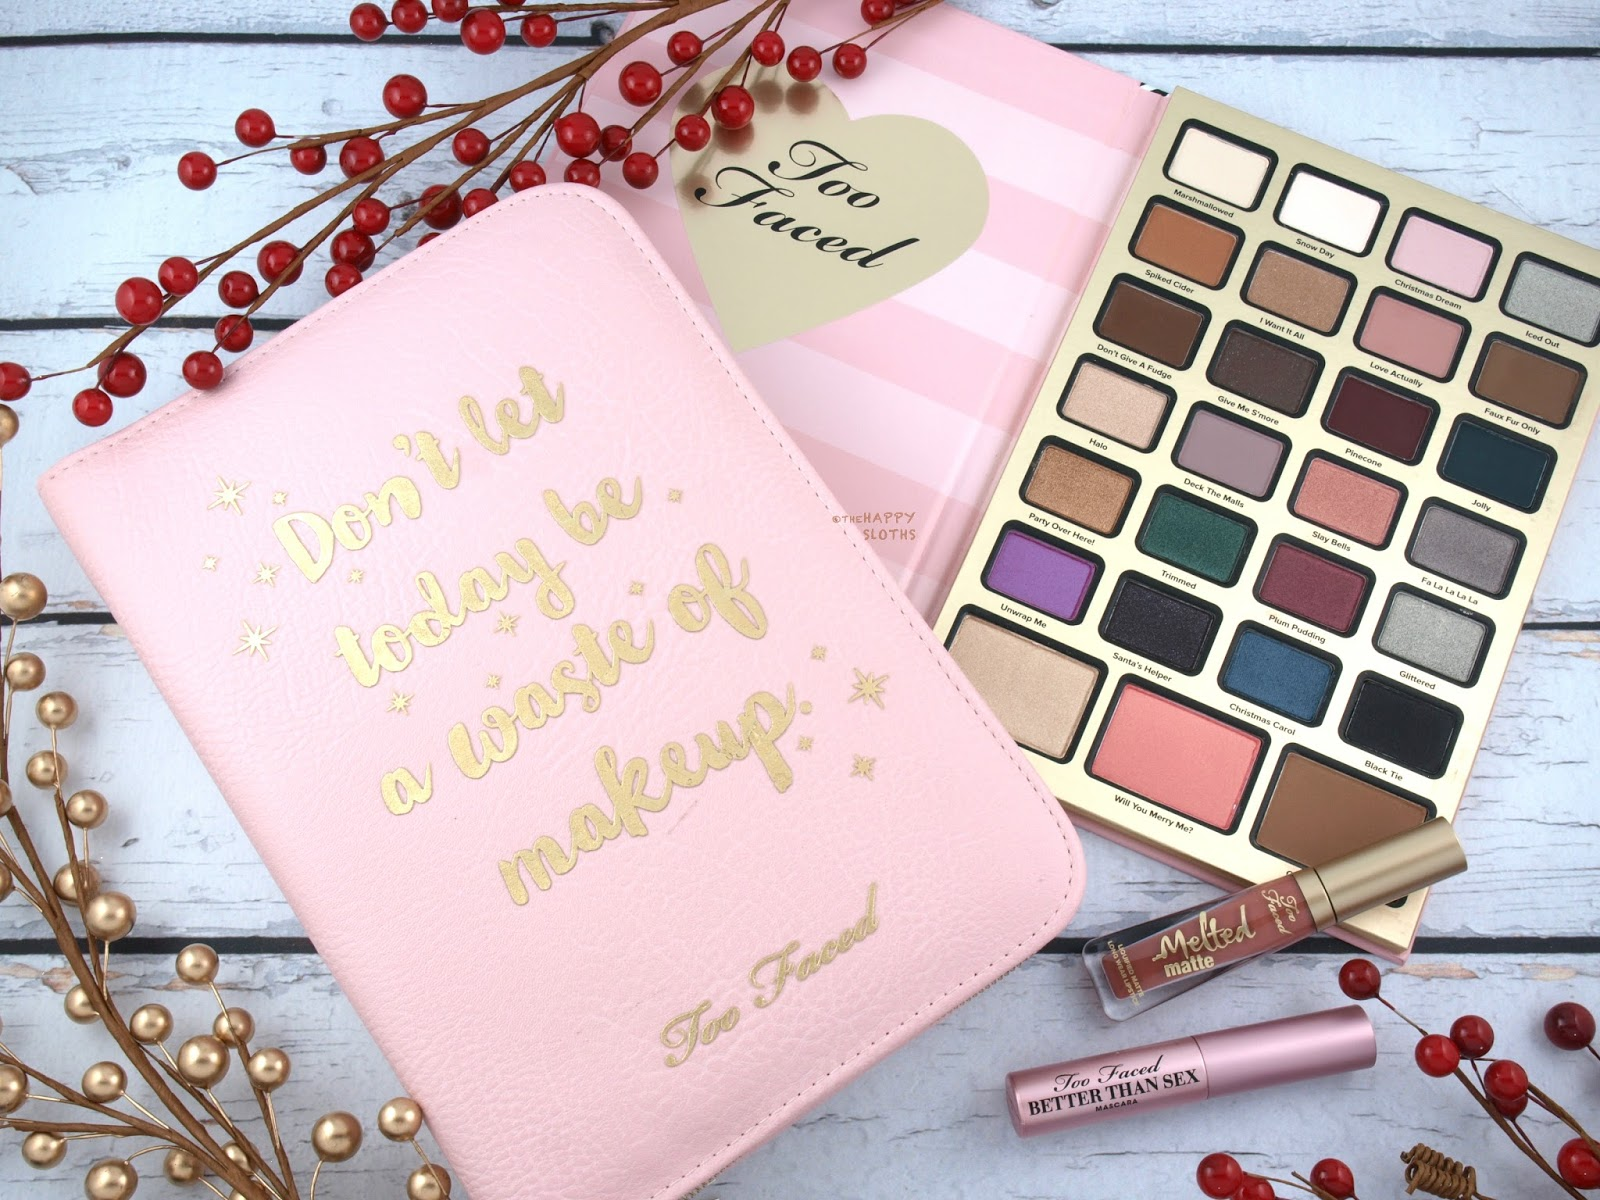 Too Faced Holiday 2017 | Boss Lady Beauty Agenda: Review and Swatches